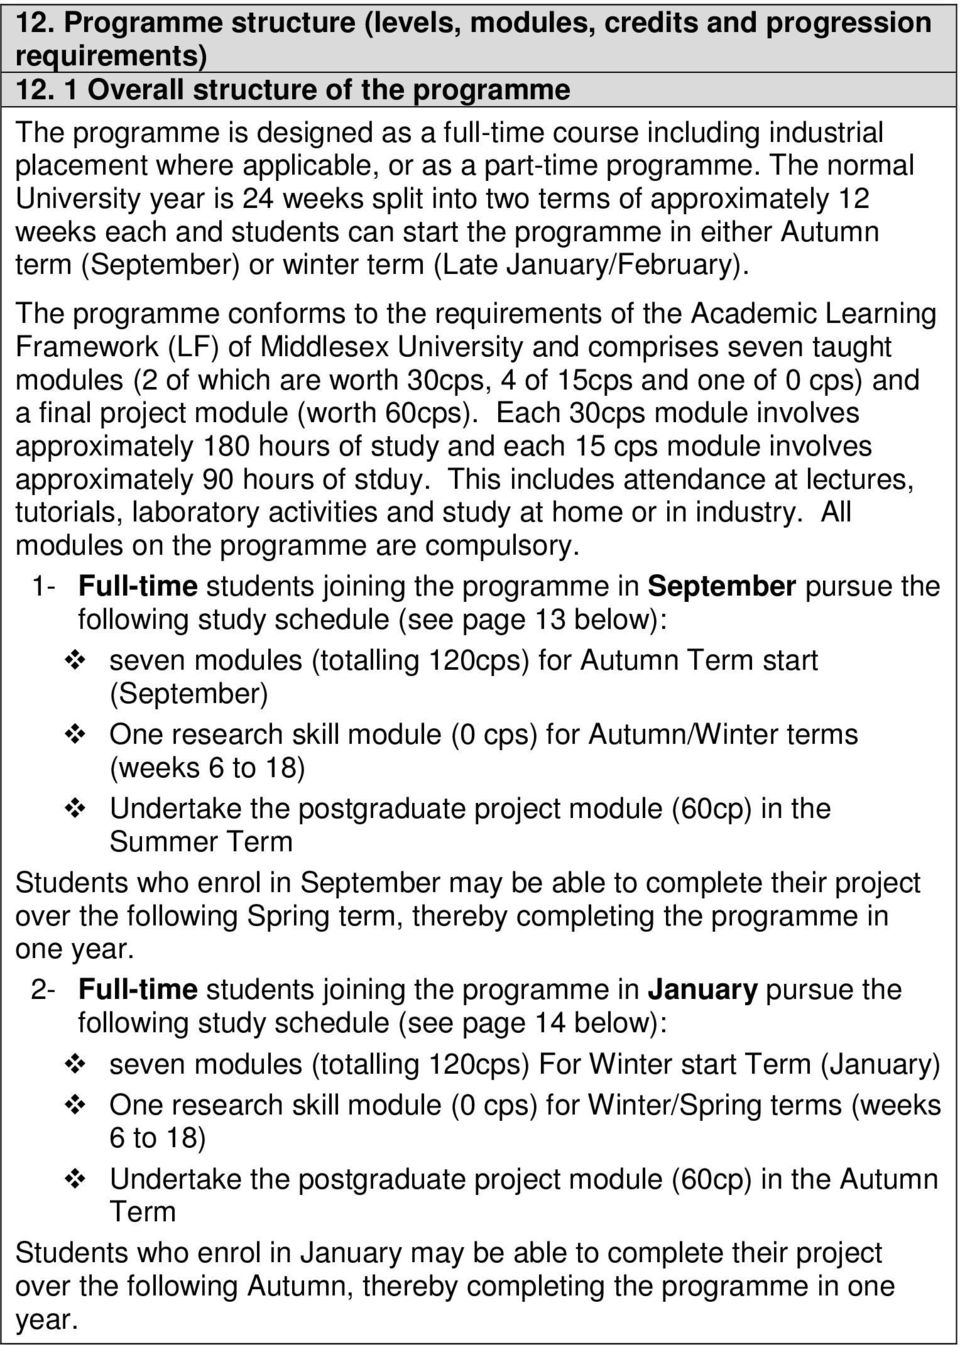 The normal University year is 24 weeks split into two terms of approximately 12 weeks each and students can start the programme in either Autumn term (September) or winter term (Late